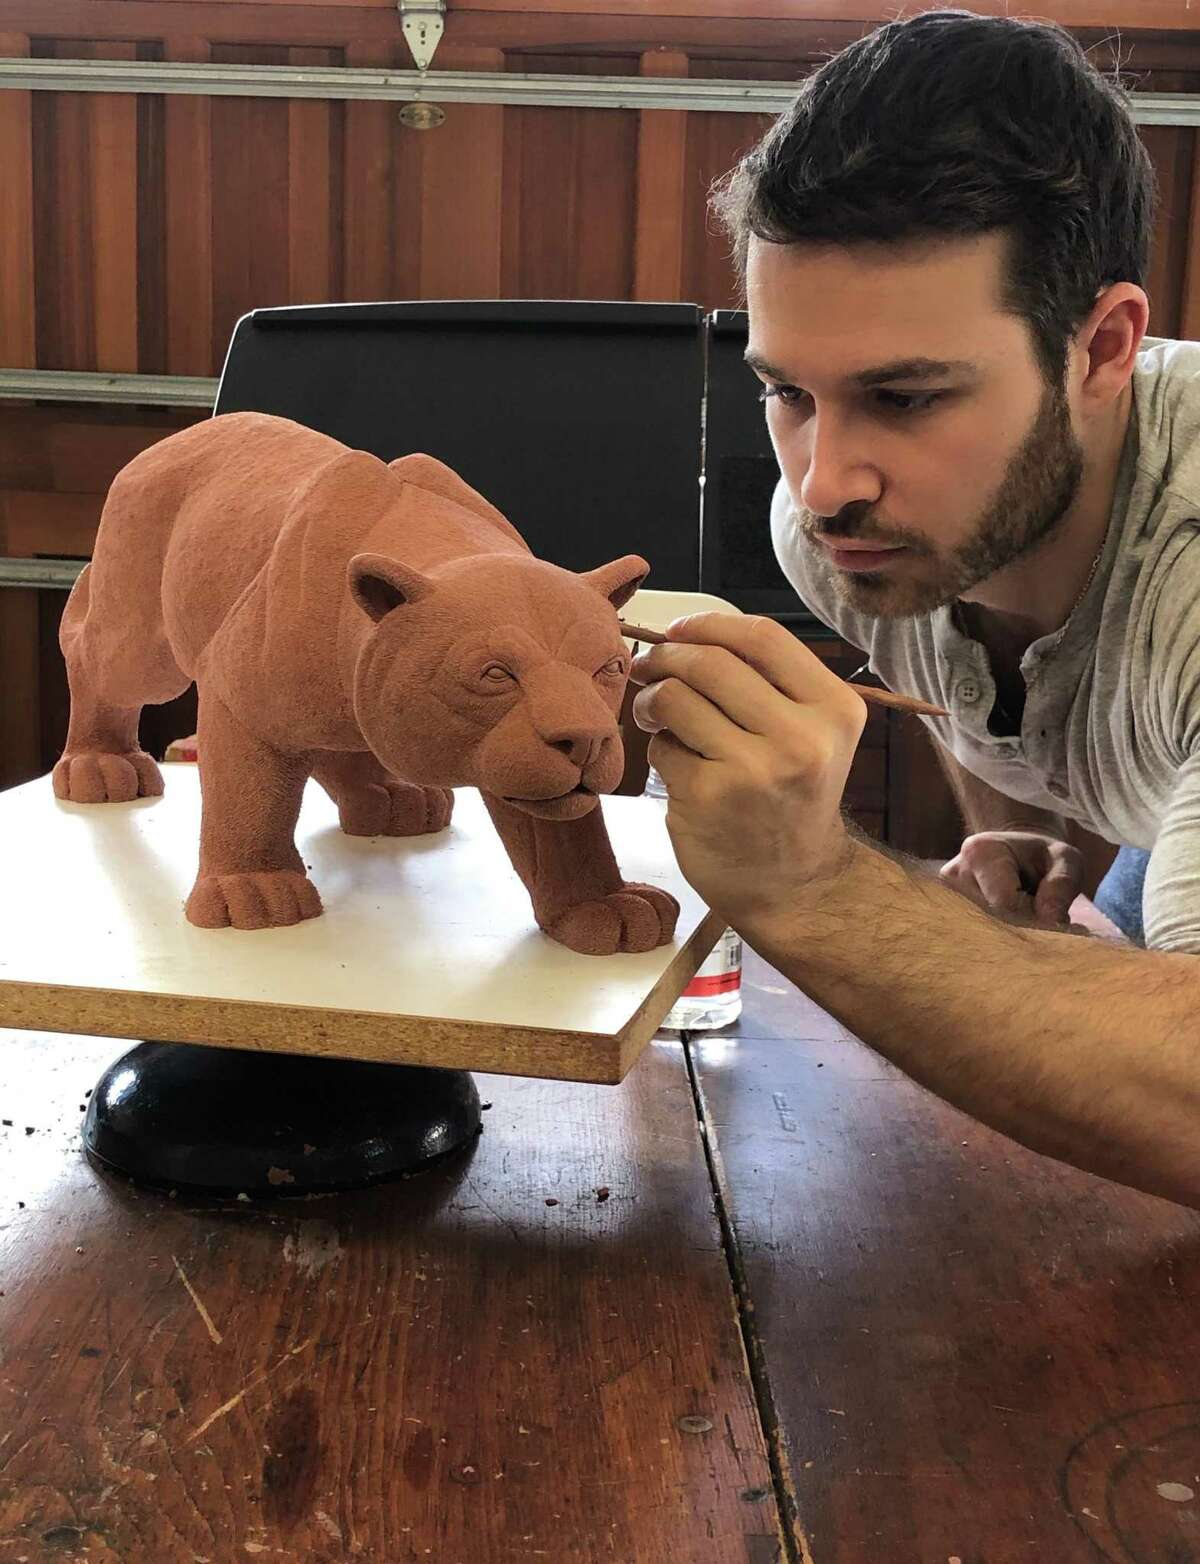 Local sculptor with a studio in Weston, Jesse Nusbaum, has been selected as a winner of the Artist of the Future award by the Contemporary Art Curator Magazine.